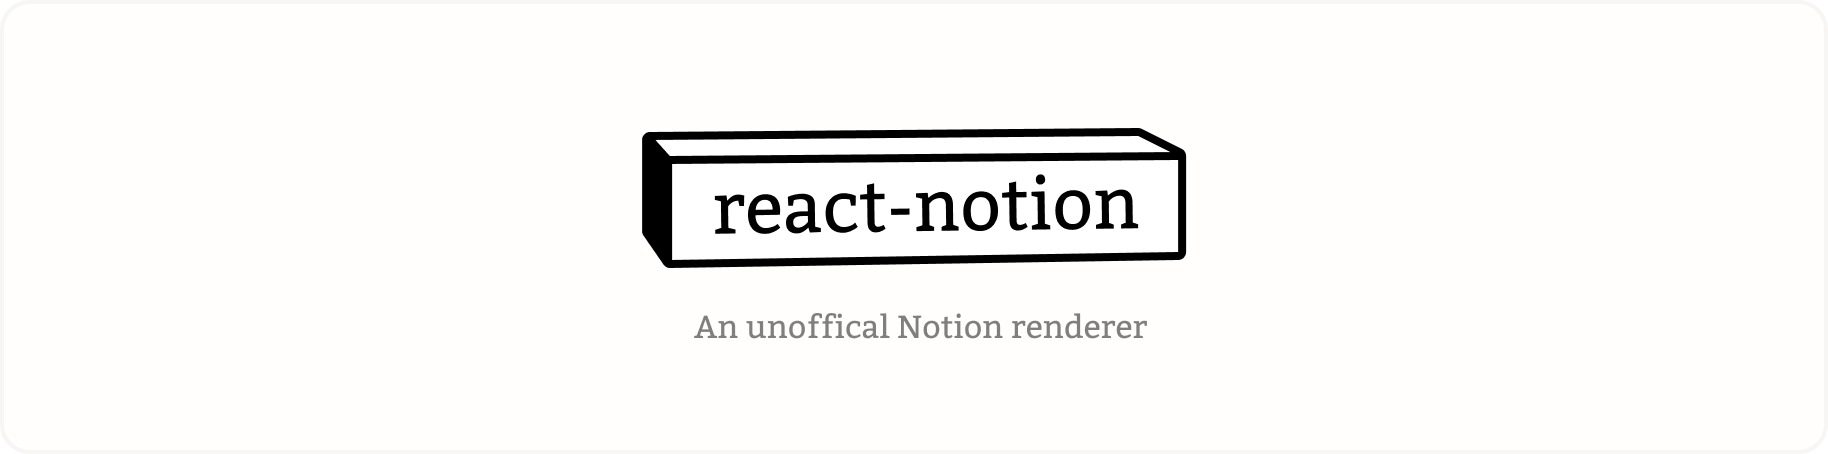 react-notion is born